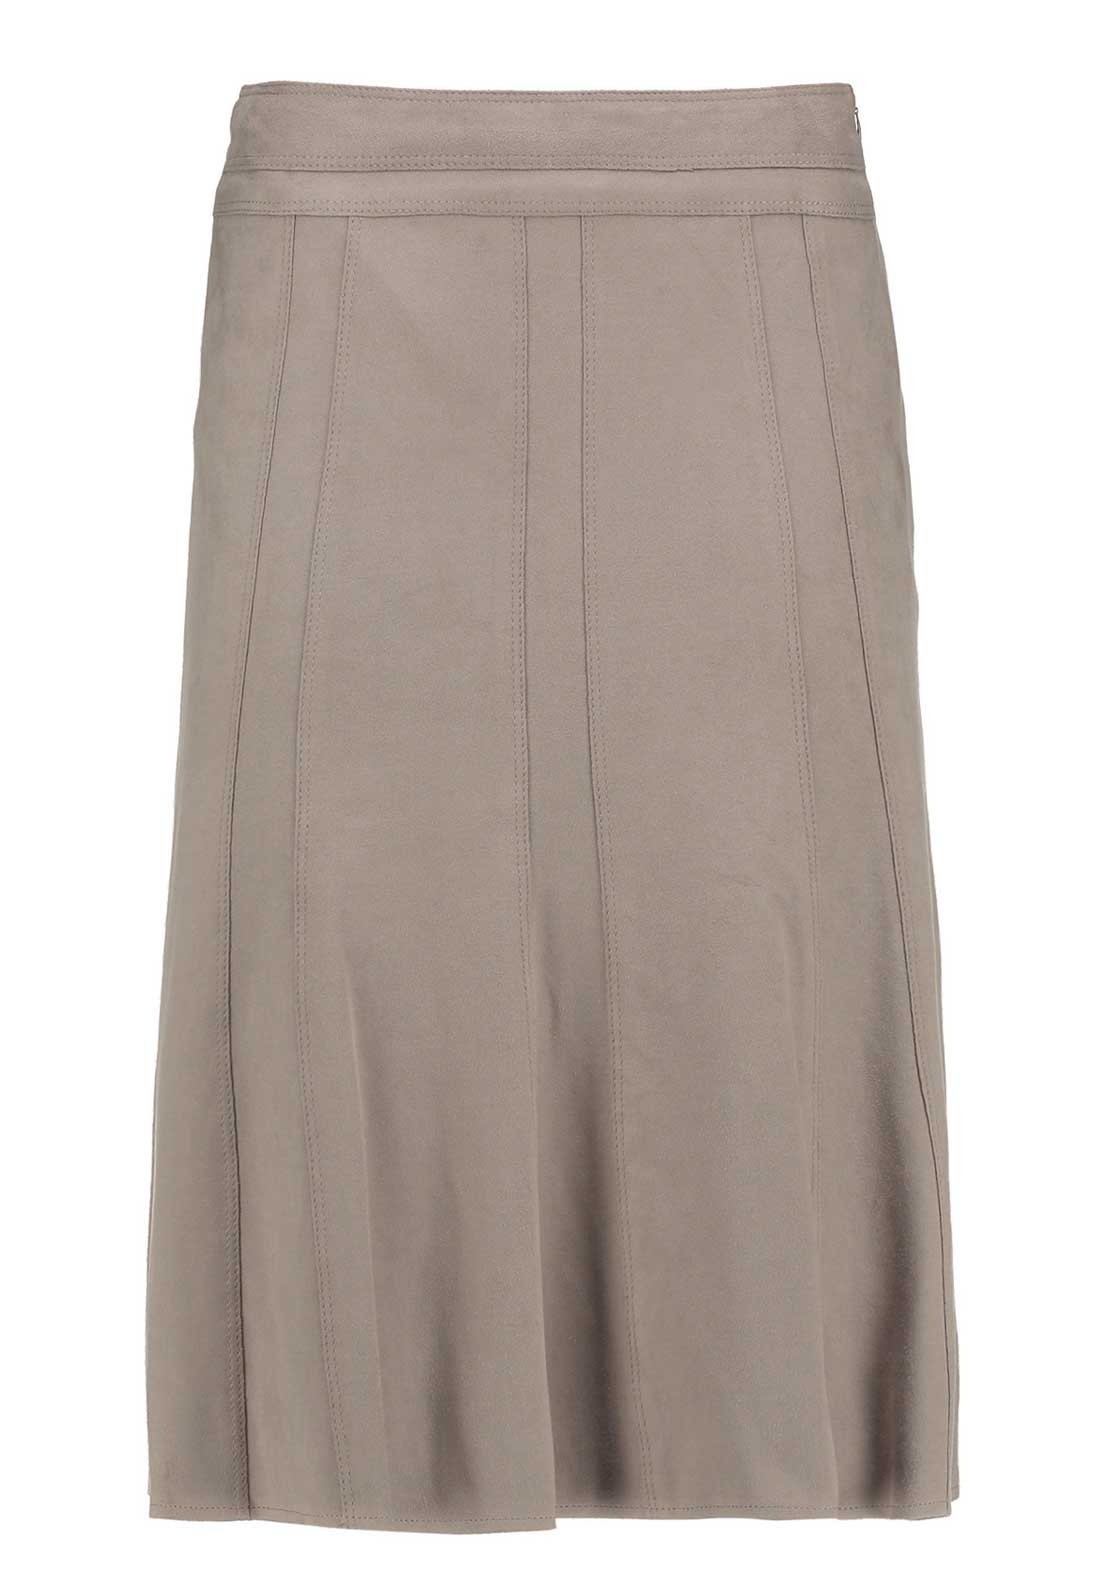 Gerry Weber Faux Suede A-Line Midi Skirt, Beige